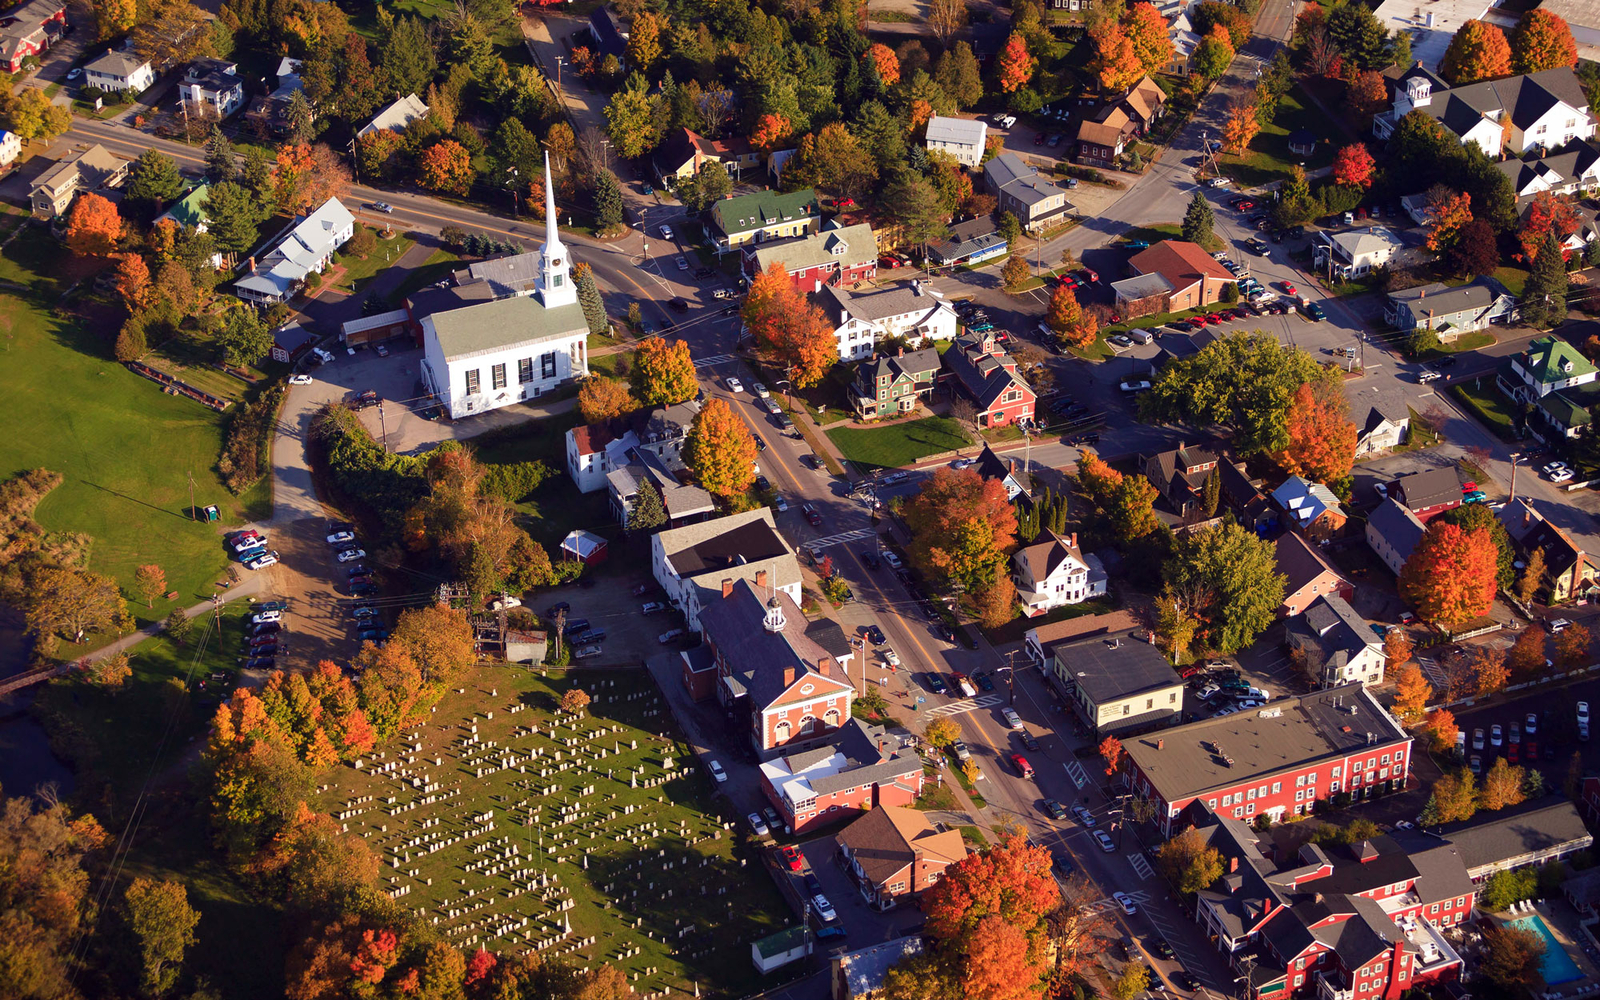 aerial view of fall in Stowe, Vermont